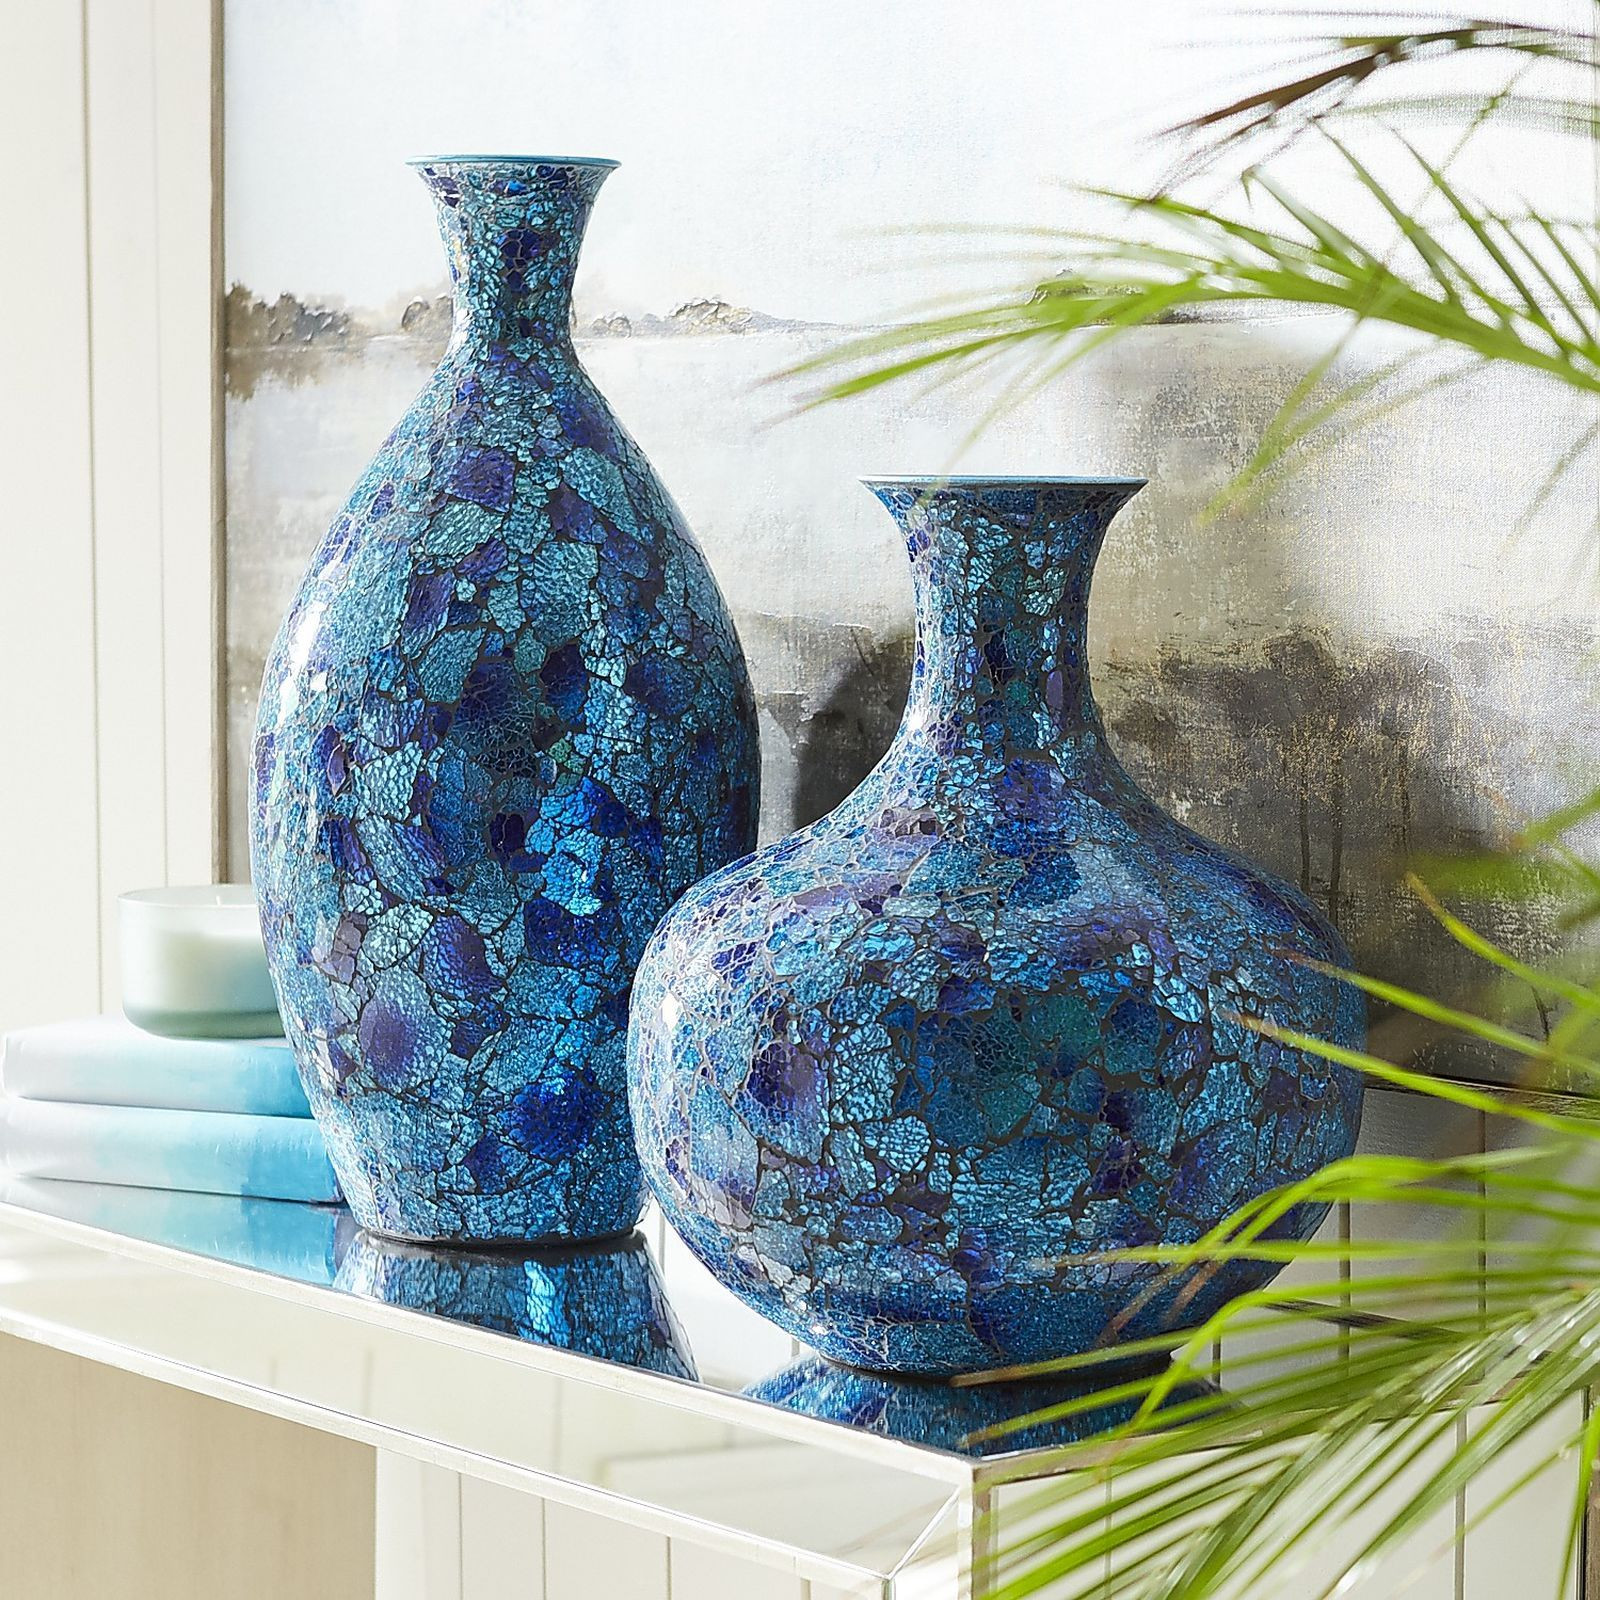 14 attractive Pier 1 Blue Vase 2021 free download pier 1 blue vase of the splendor of the sea is captured in our dazzling iron and glass regarding the splendor of the sea is captured in our dazzling iron and glass mosaic vases with splendid